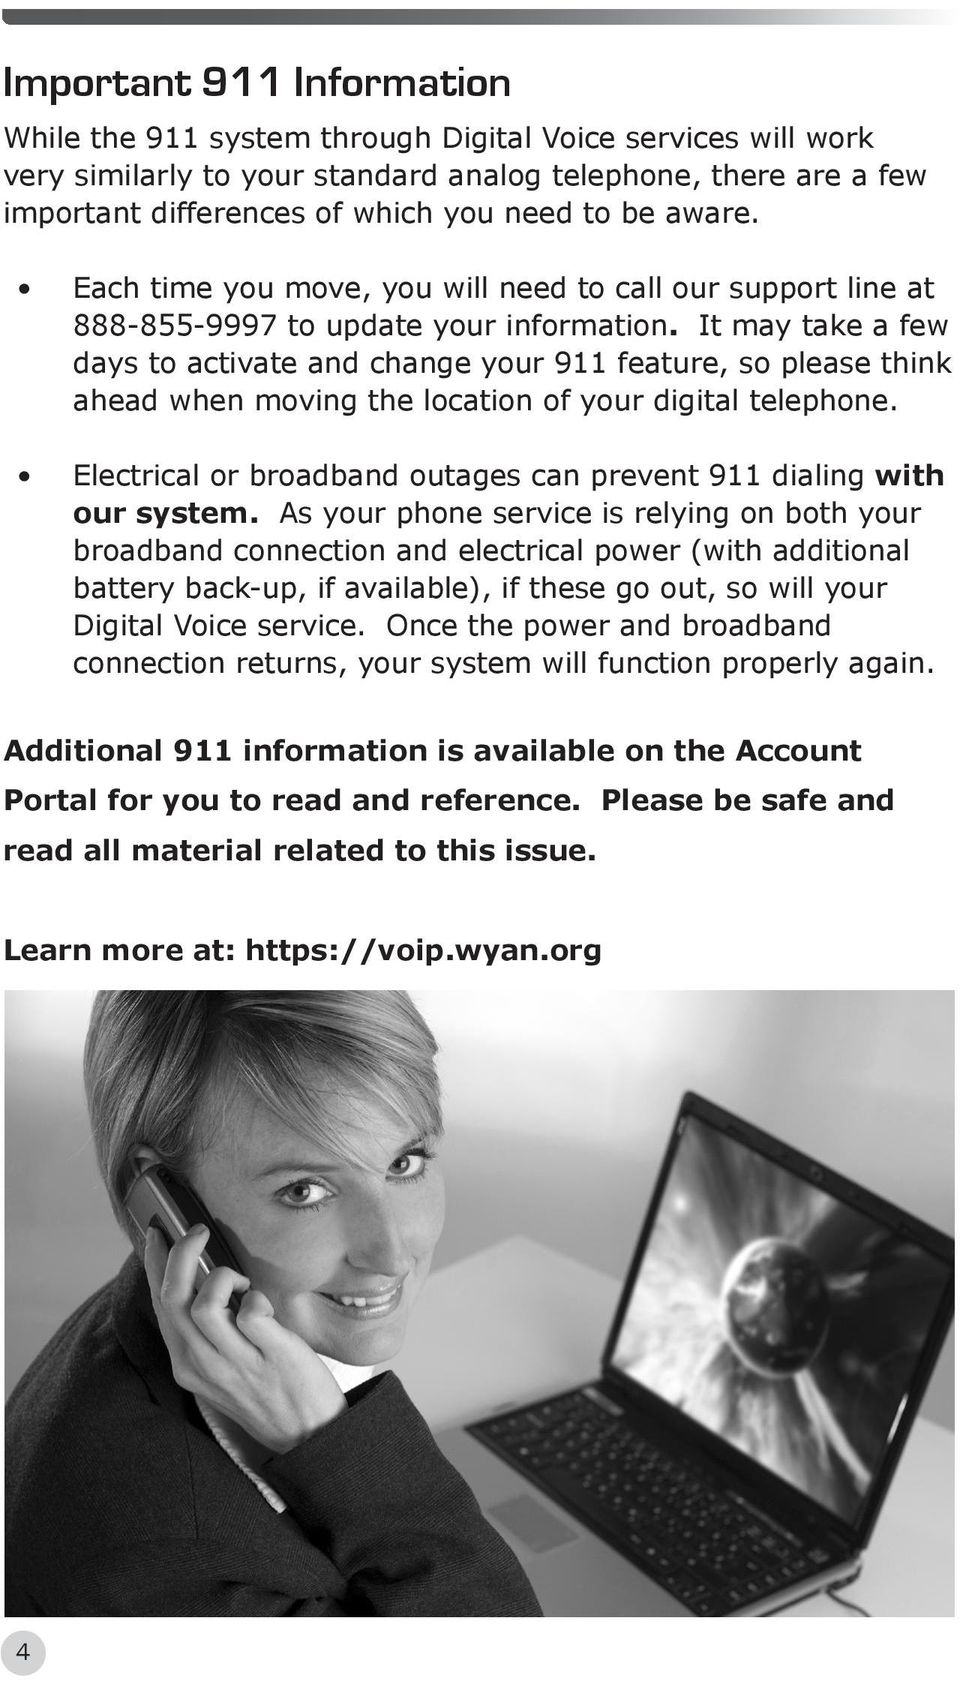 It may take a few days to activate and change your 911 feature, so please think ahead when moving the location of your digital telephone.